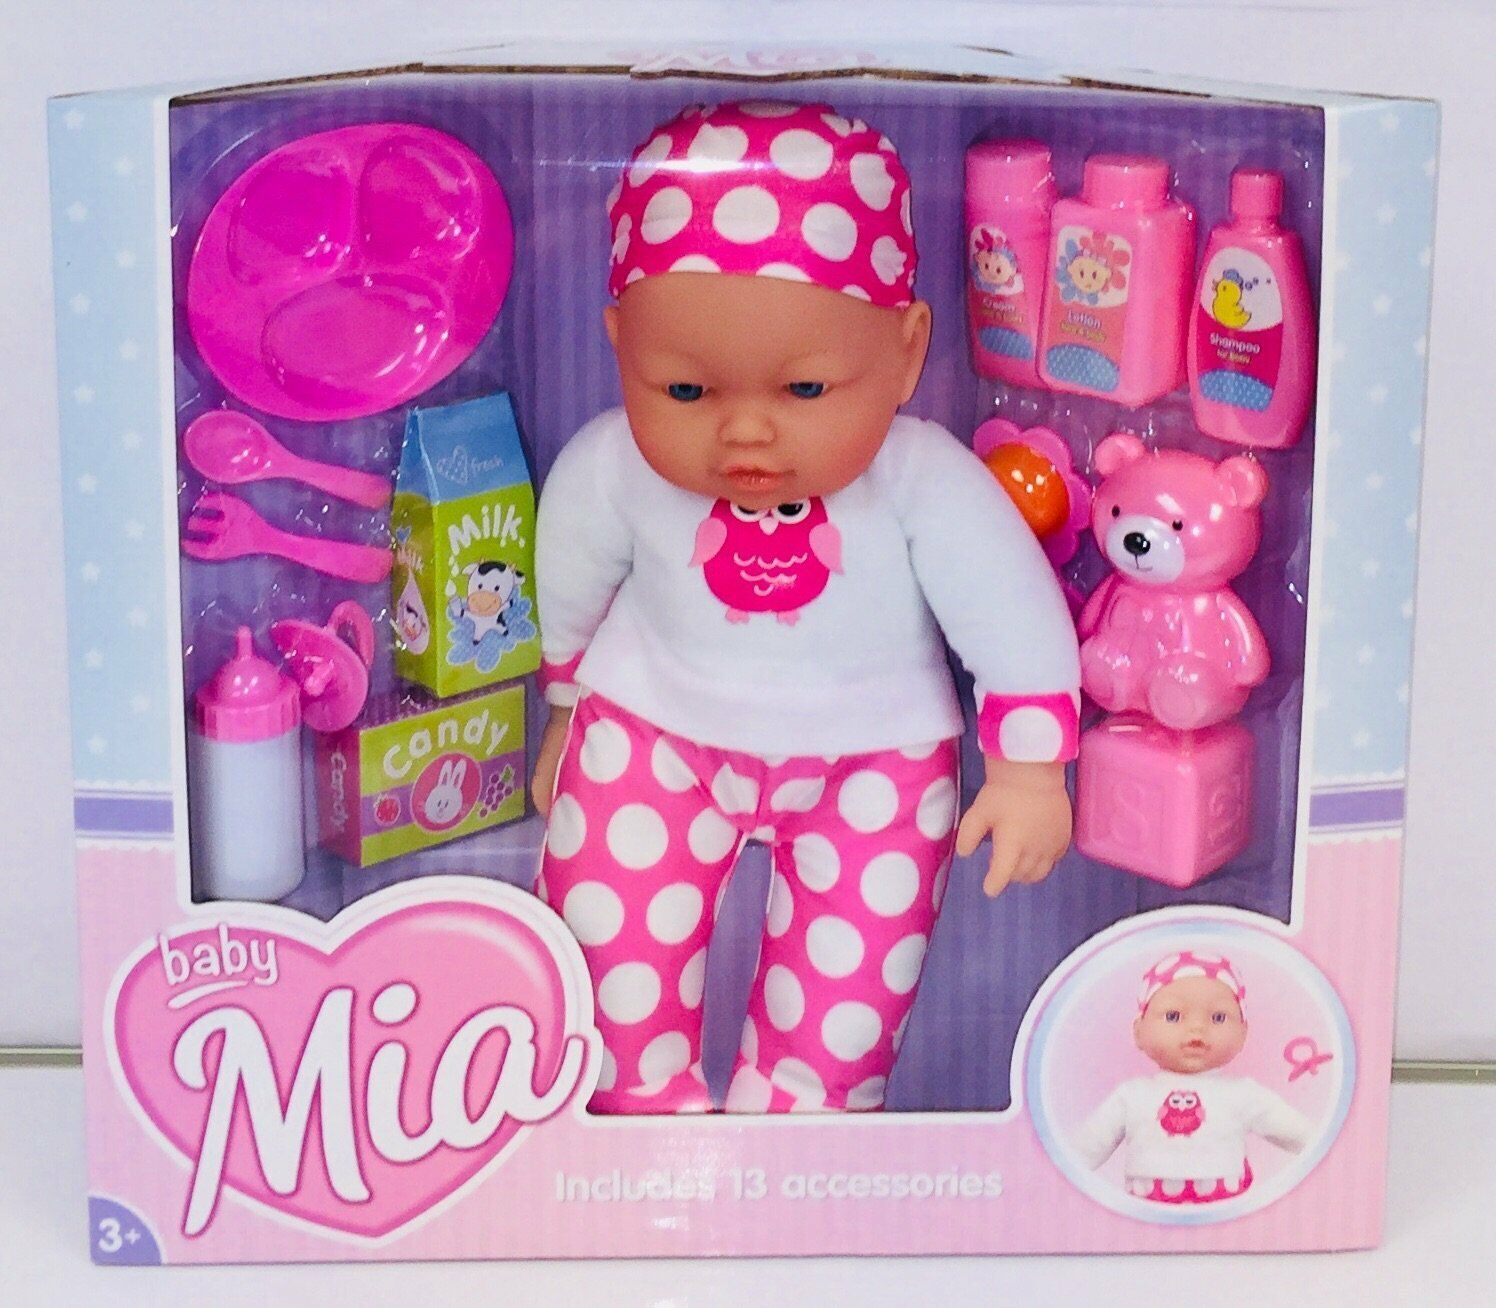 Pink 41cm Baby Mia Doll - 13 Accessories Lifelike Baby Doll Gift Set